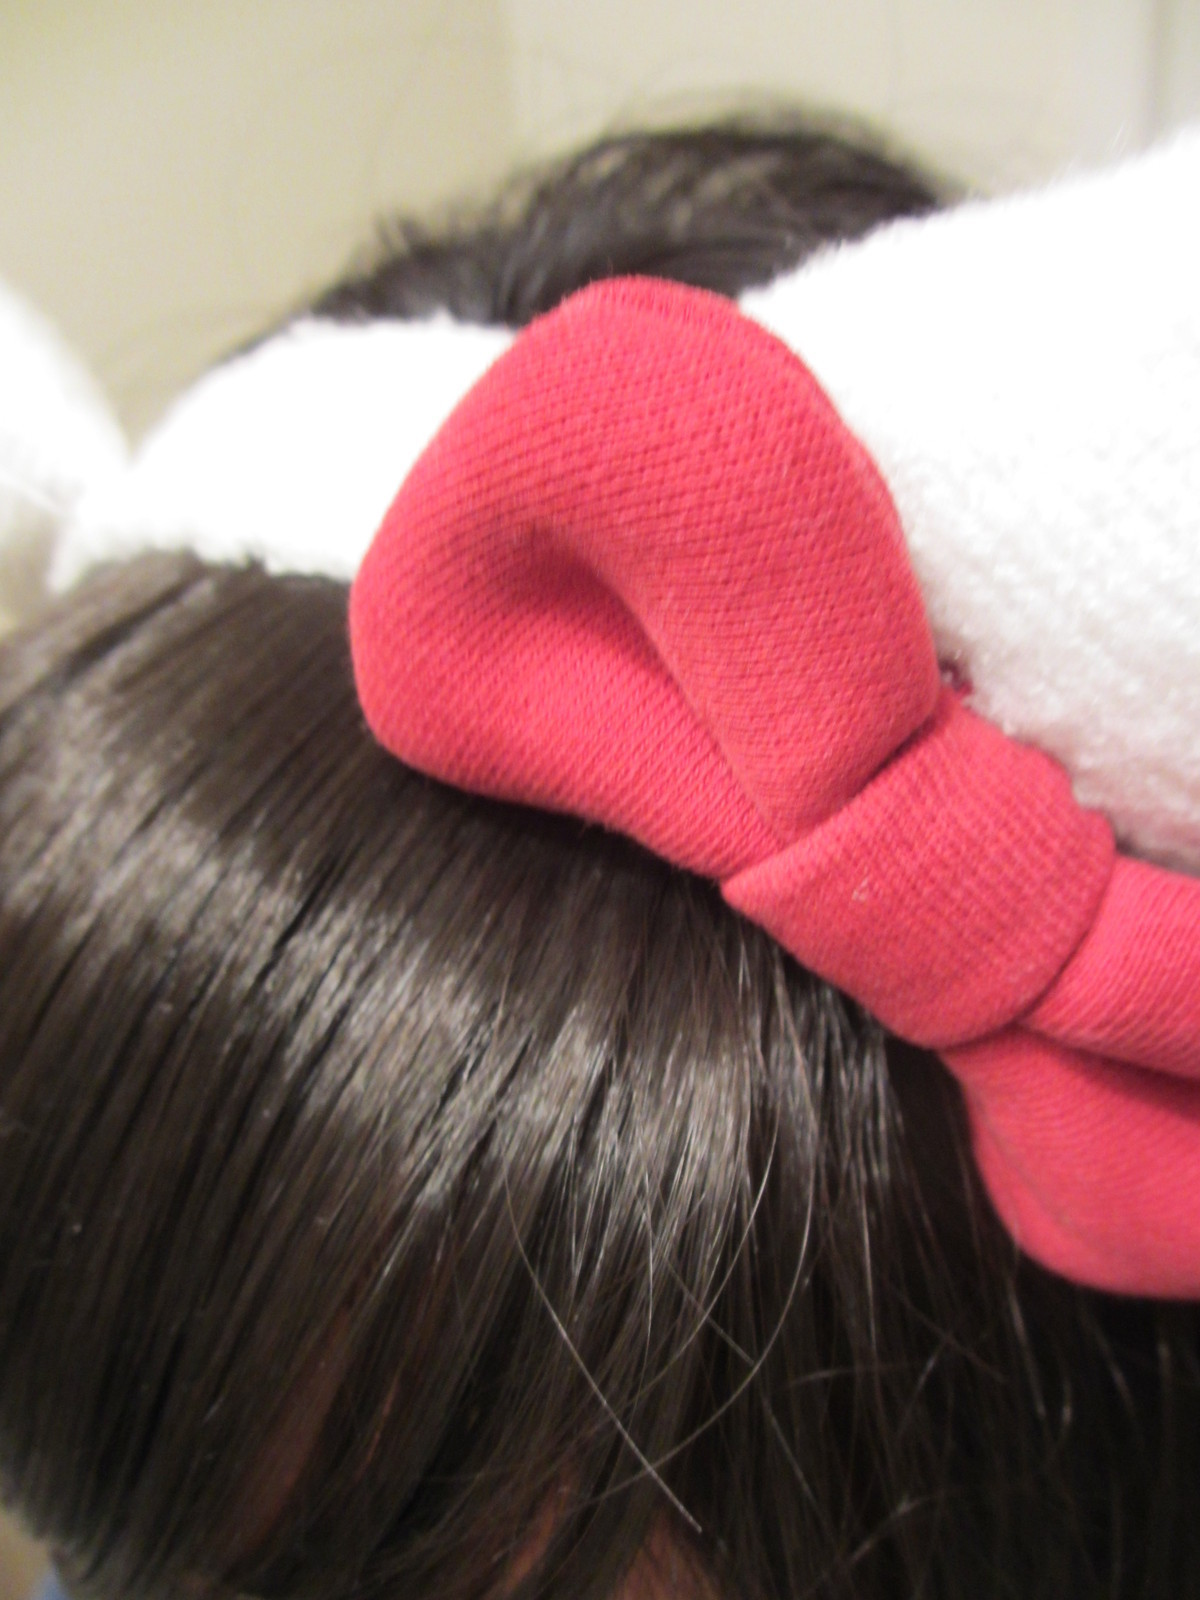 Hello Kitty Ears Headband 183 How To Make An Ear Horn 183 Sewing And Sewing On Cut Out Keep